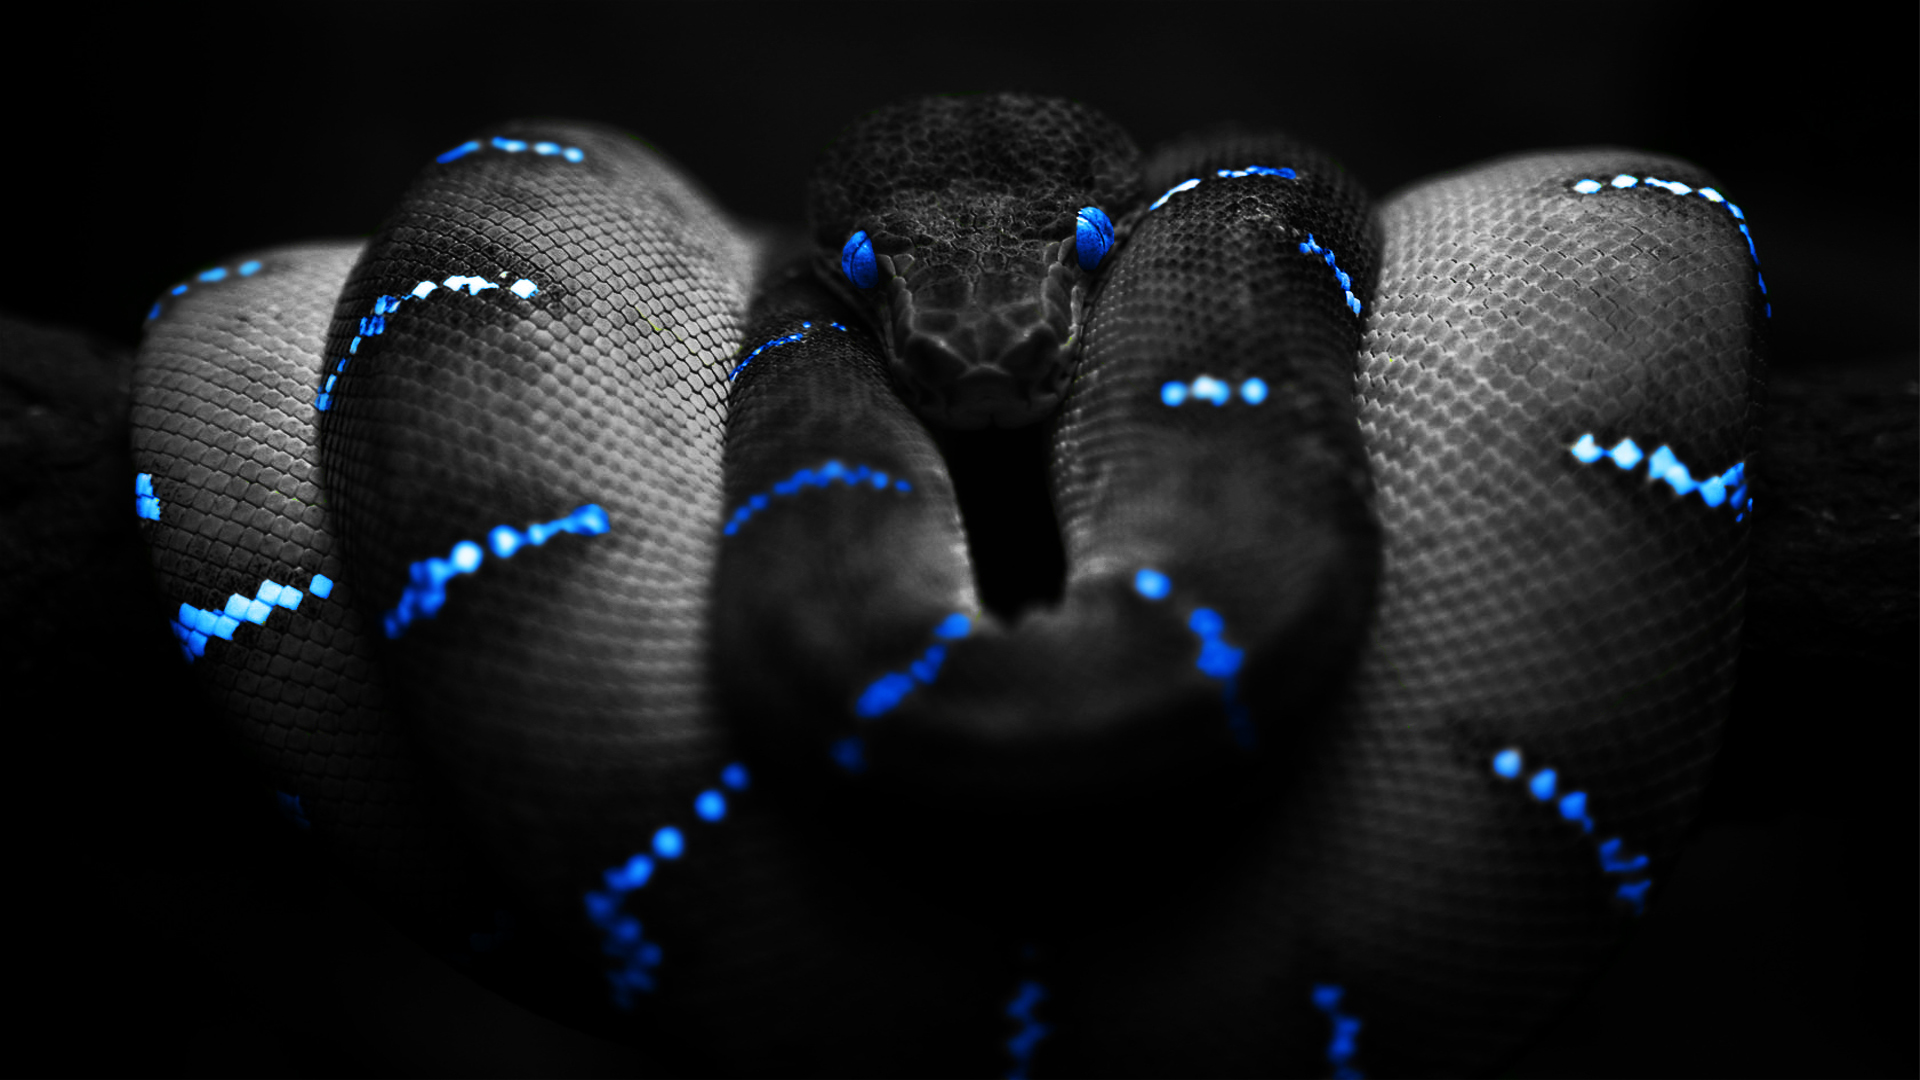 Snakes with Effect Pictures